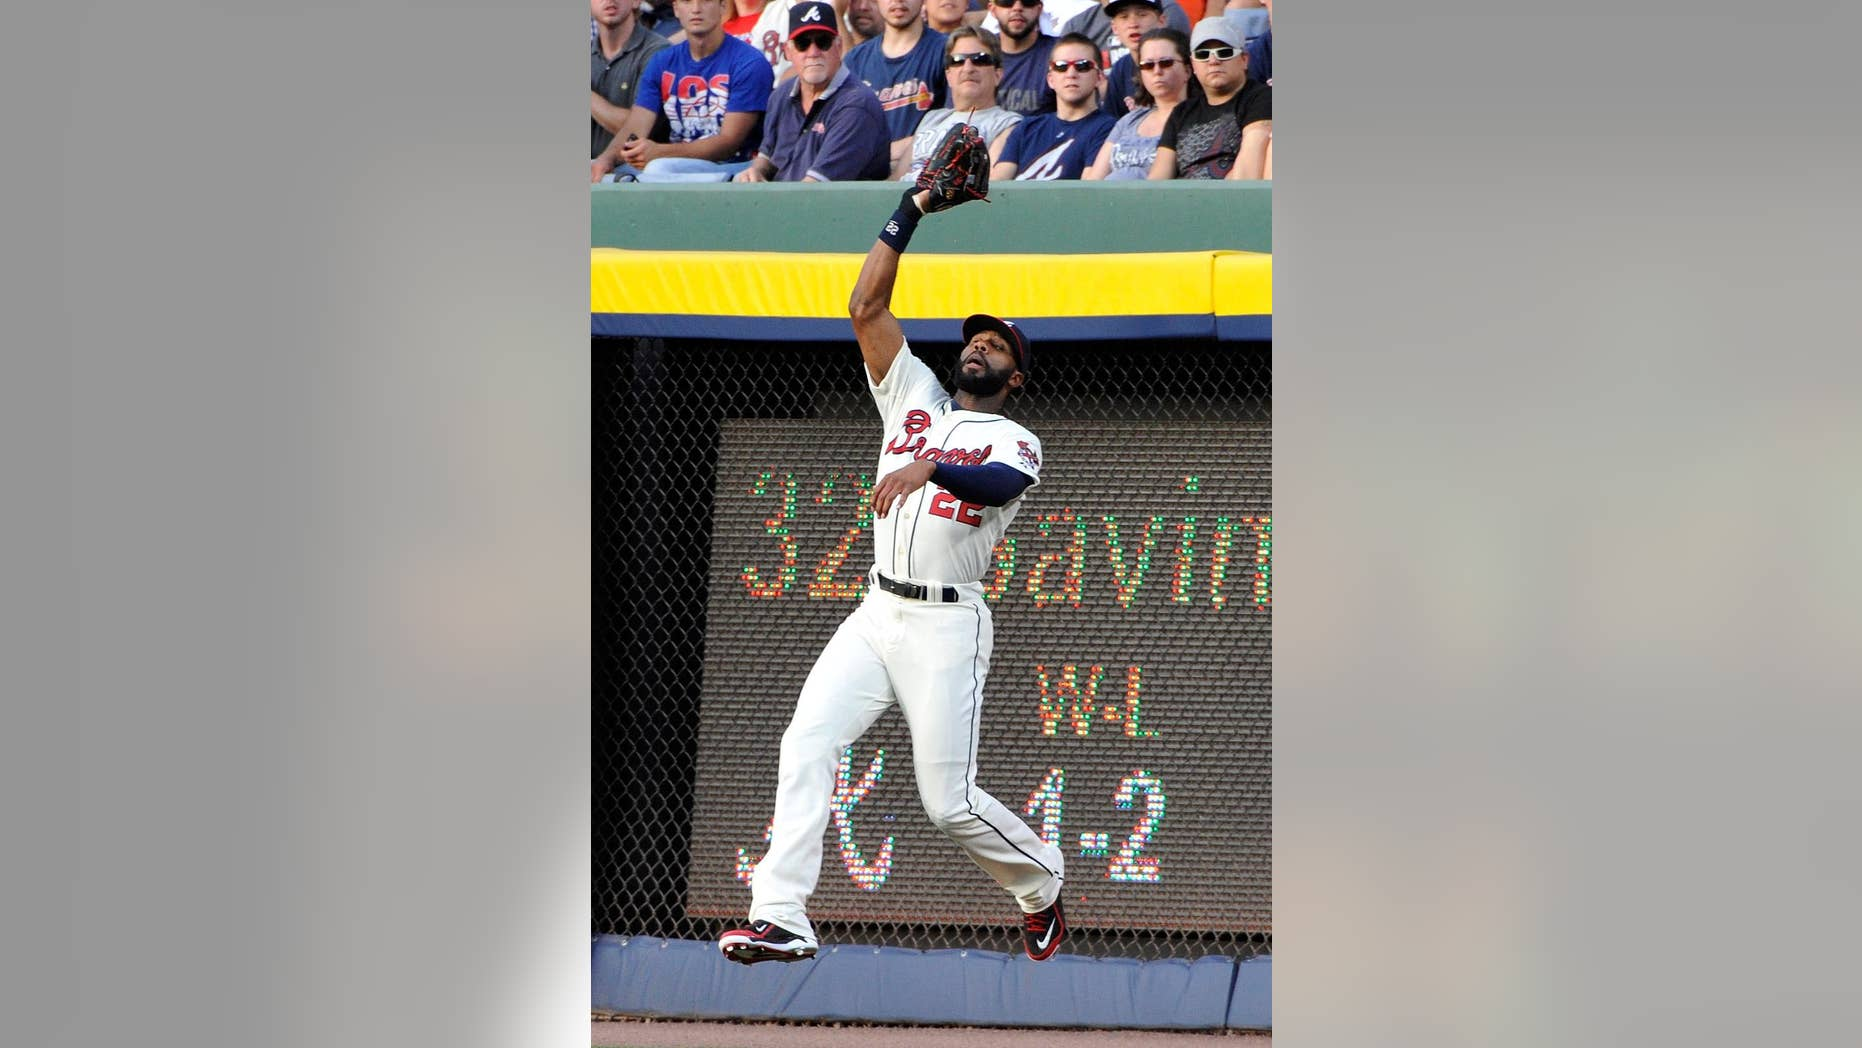 Atlanta Braves right fielder Jason Heyward fields a fly ball from Los Angeles Angels' David Freese for an out during the third inning of a baseball game on Saturday, June 14, 2014, in Atlanta. (AP Photo/David Tulis)